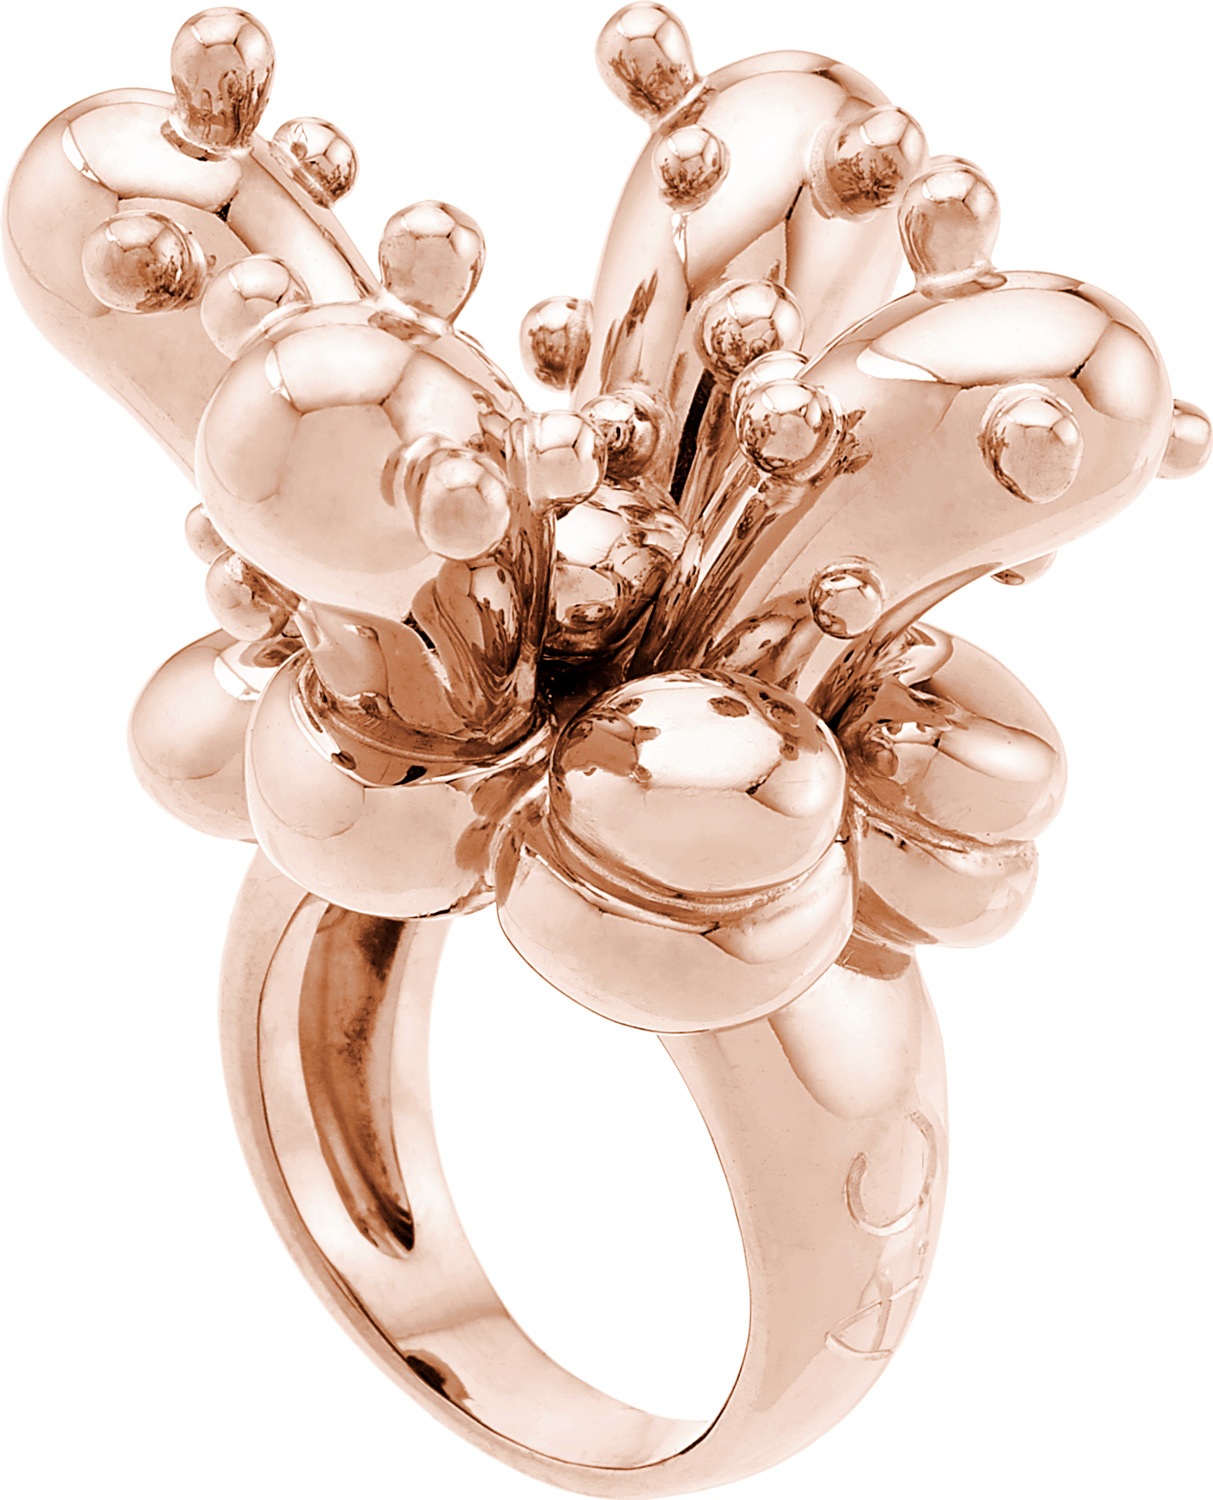 AARON CURRY for CADA<br><br>CACTUS Ring